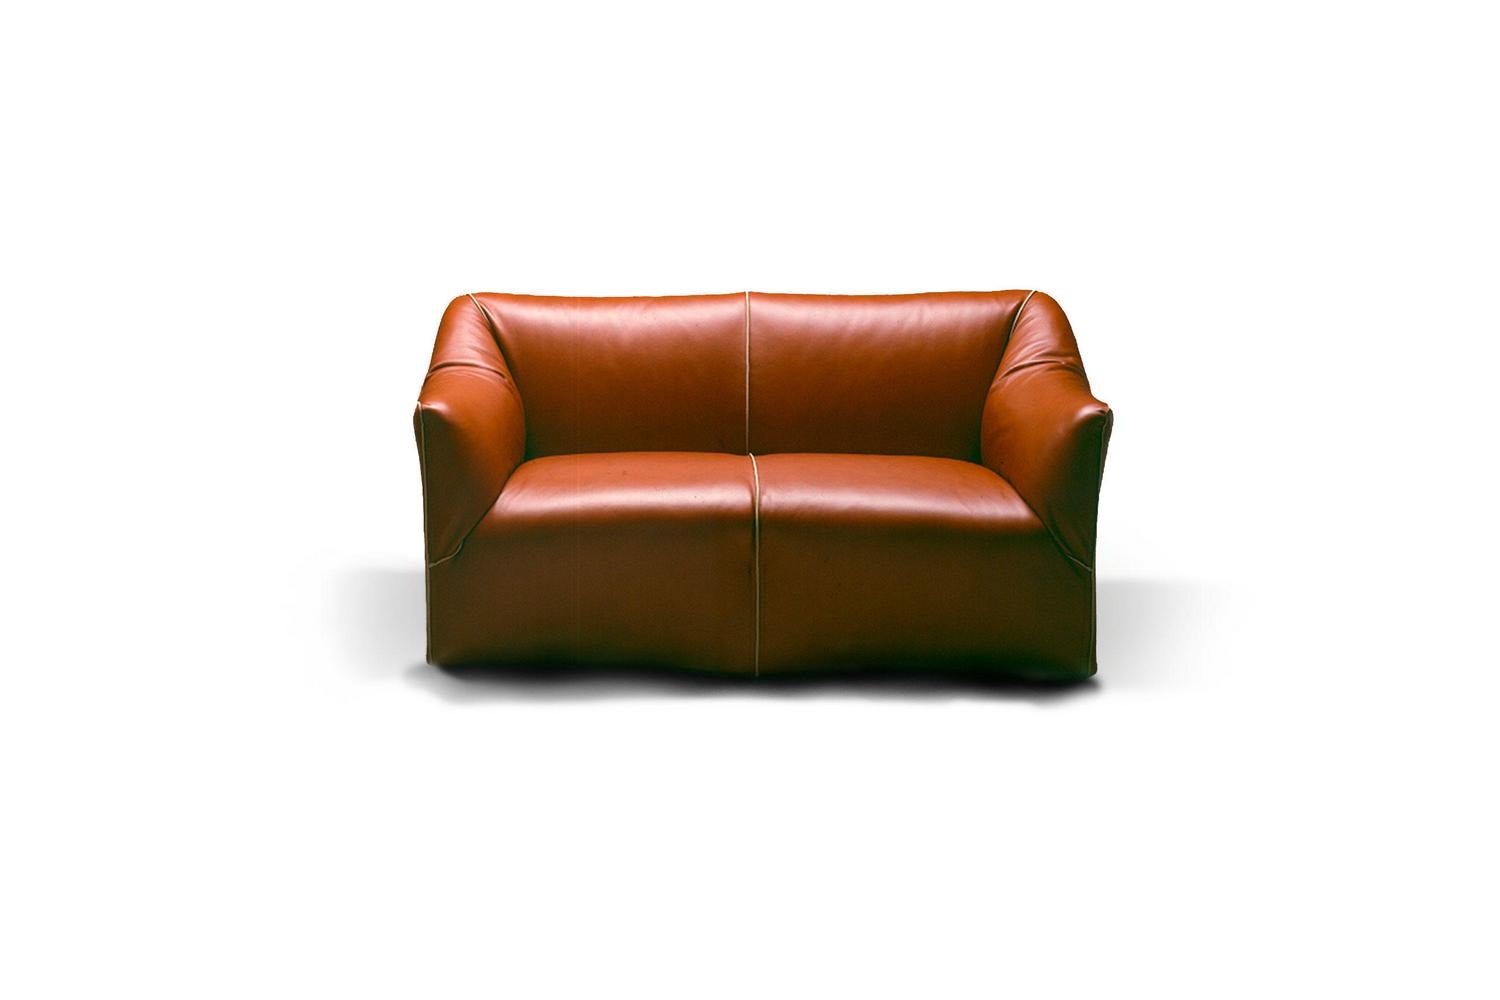 685 Sofa by Mario Bellini for Cassina